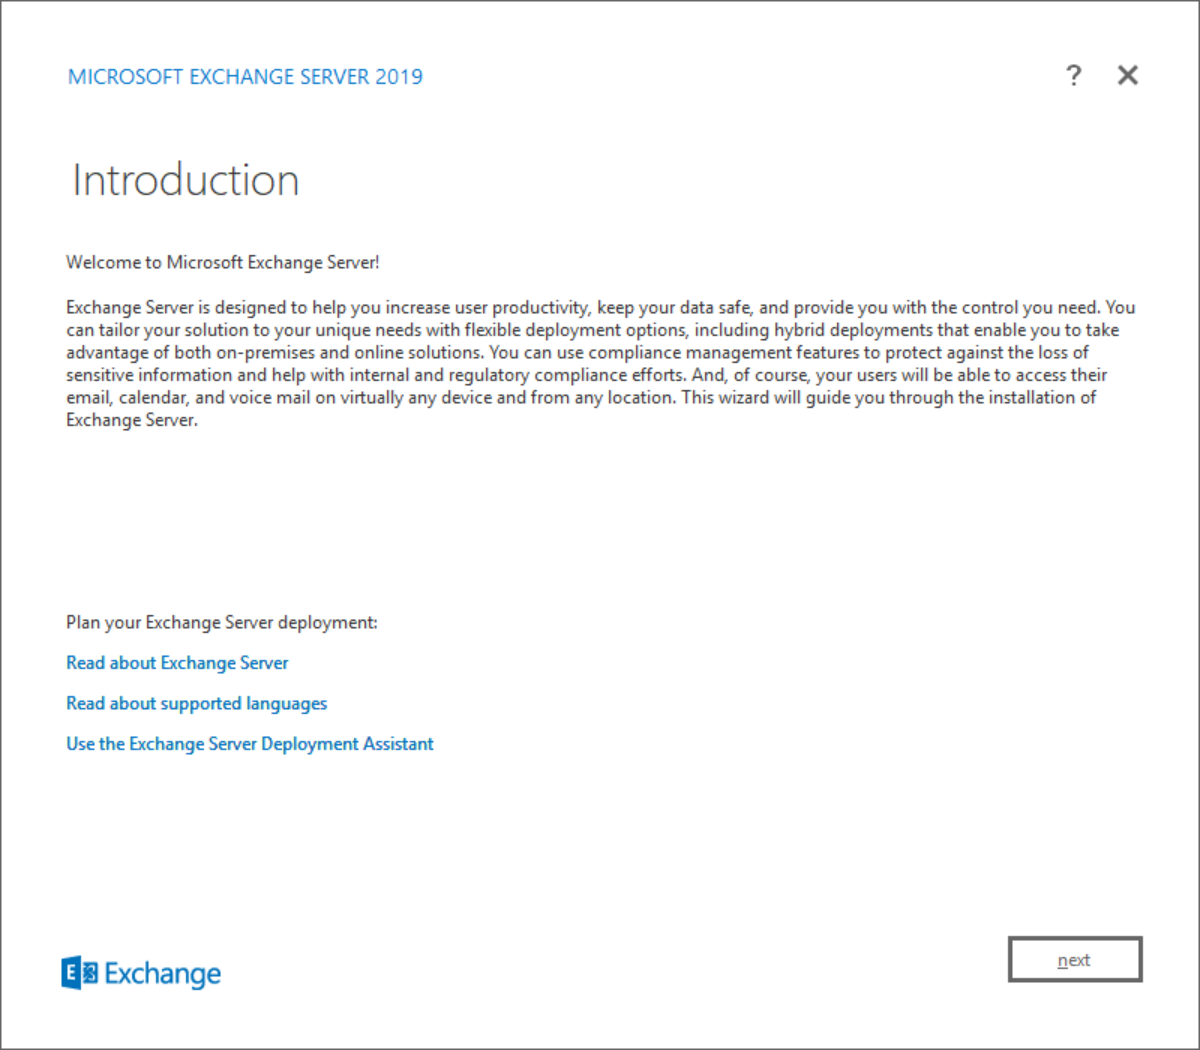 Should you upgrade to Exchange Server 2019?